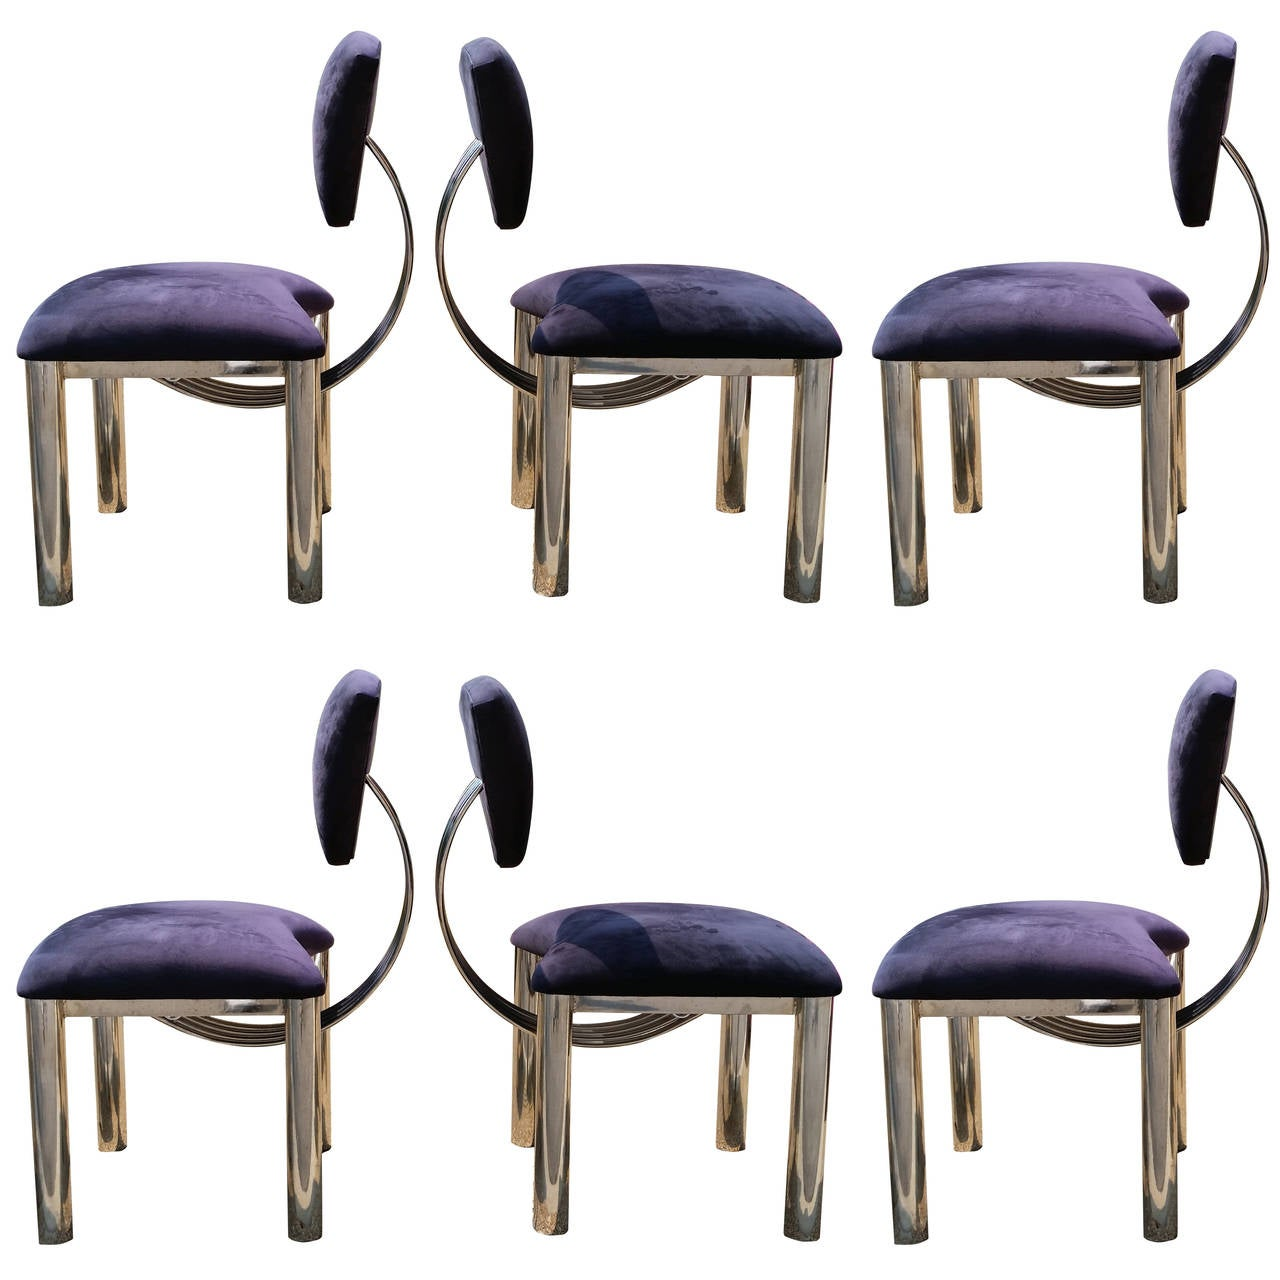 memphis style furniture. set of six memphis style chrome dining chairs in ettore sottsass 1 furniture